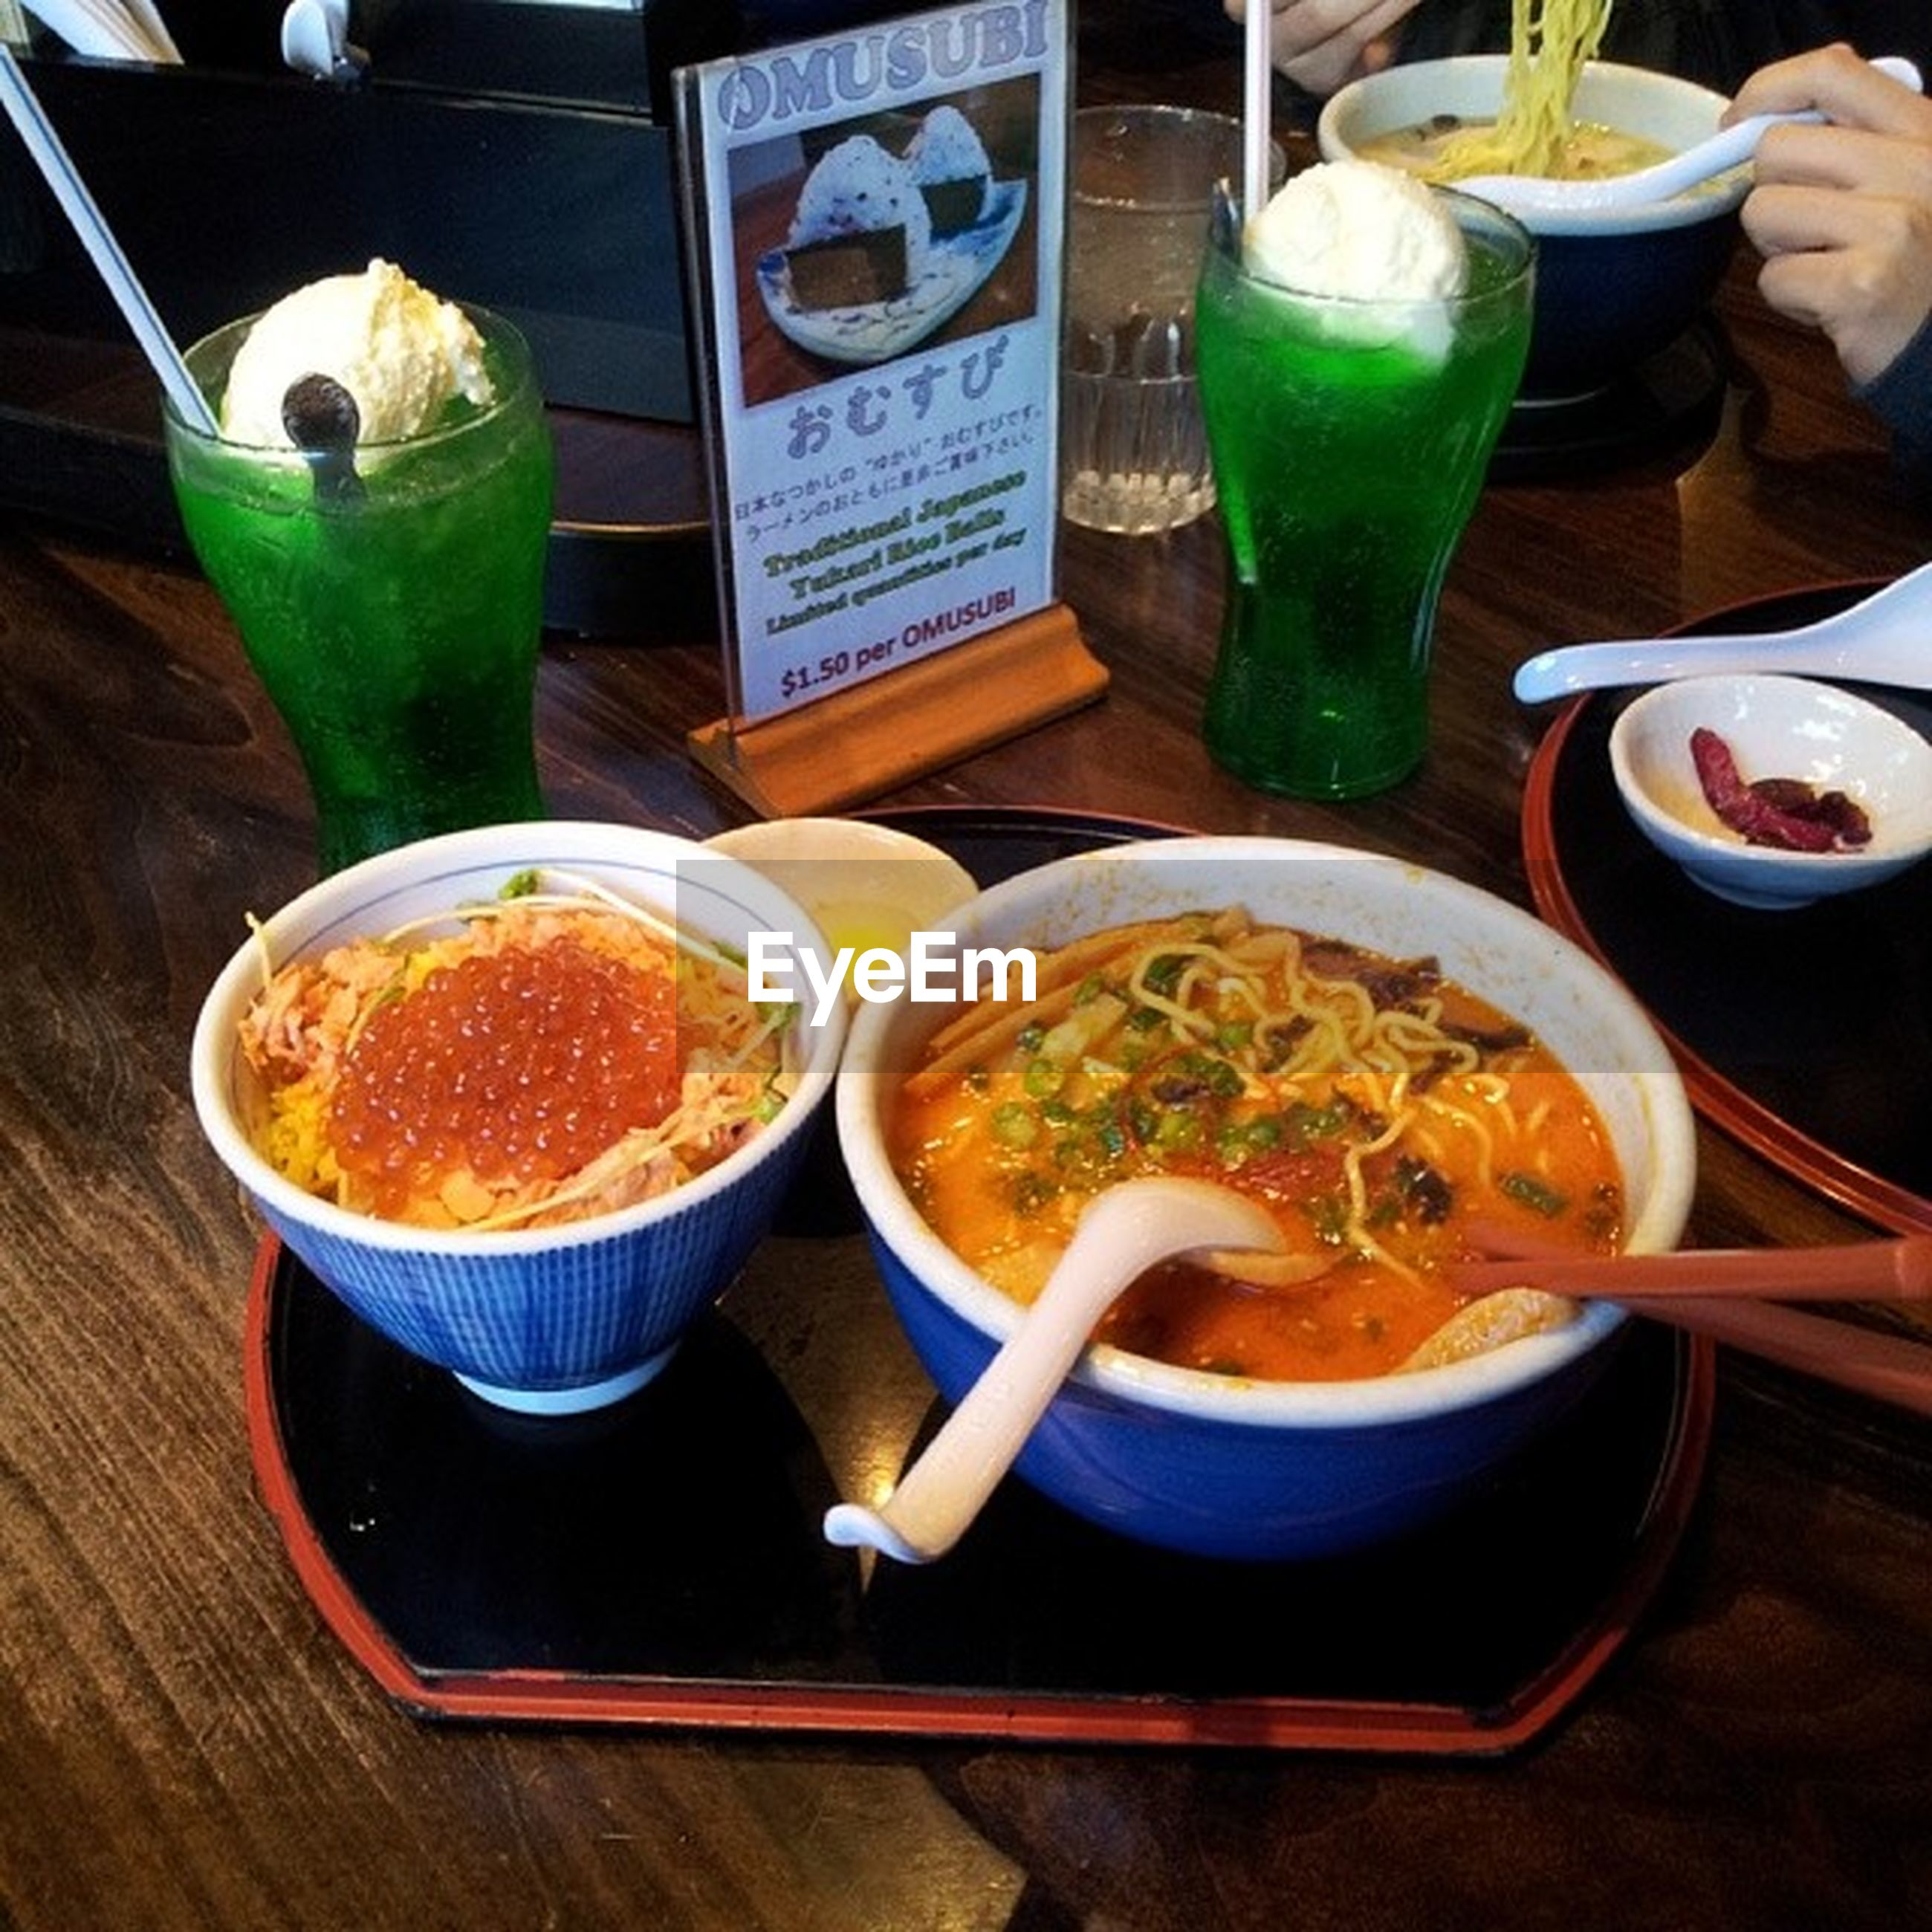 food and drink, freshness, table, food, healthy eating, indoors, ready-to-eat, still life, drink, meal, bowl, plate, soup, serving size, high angle view, close-up, healthy lifestyle, refreshment, no people, served